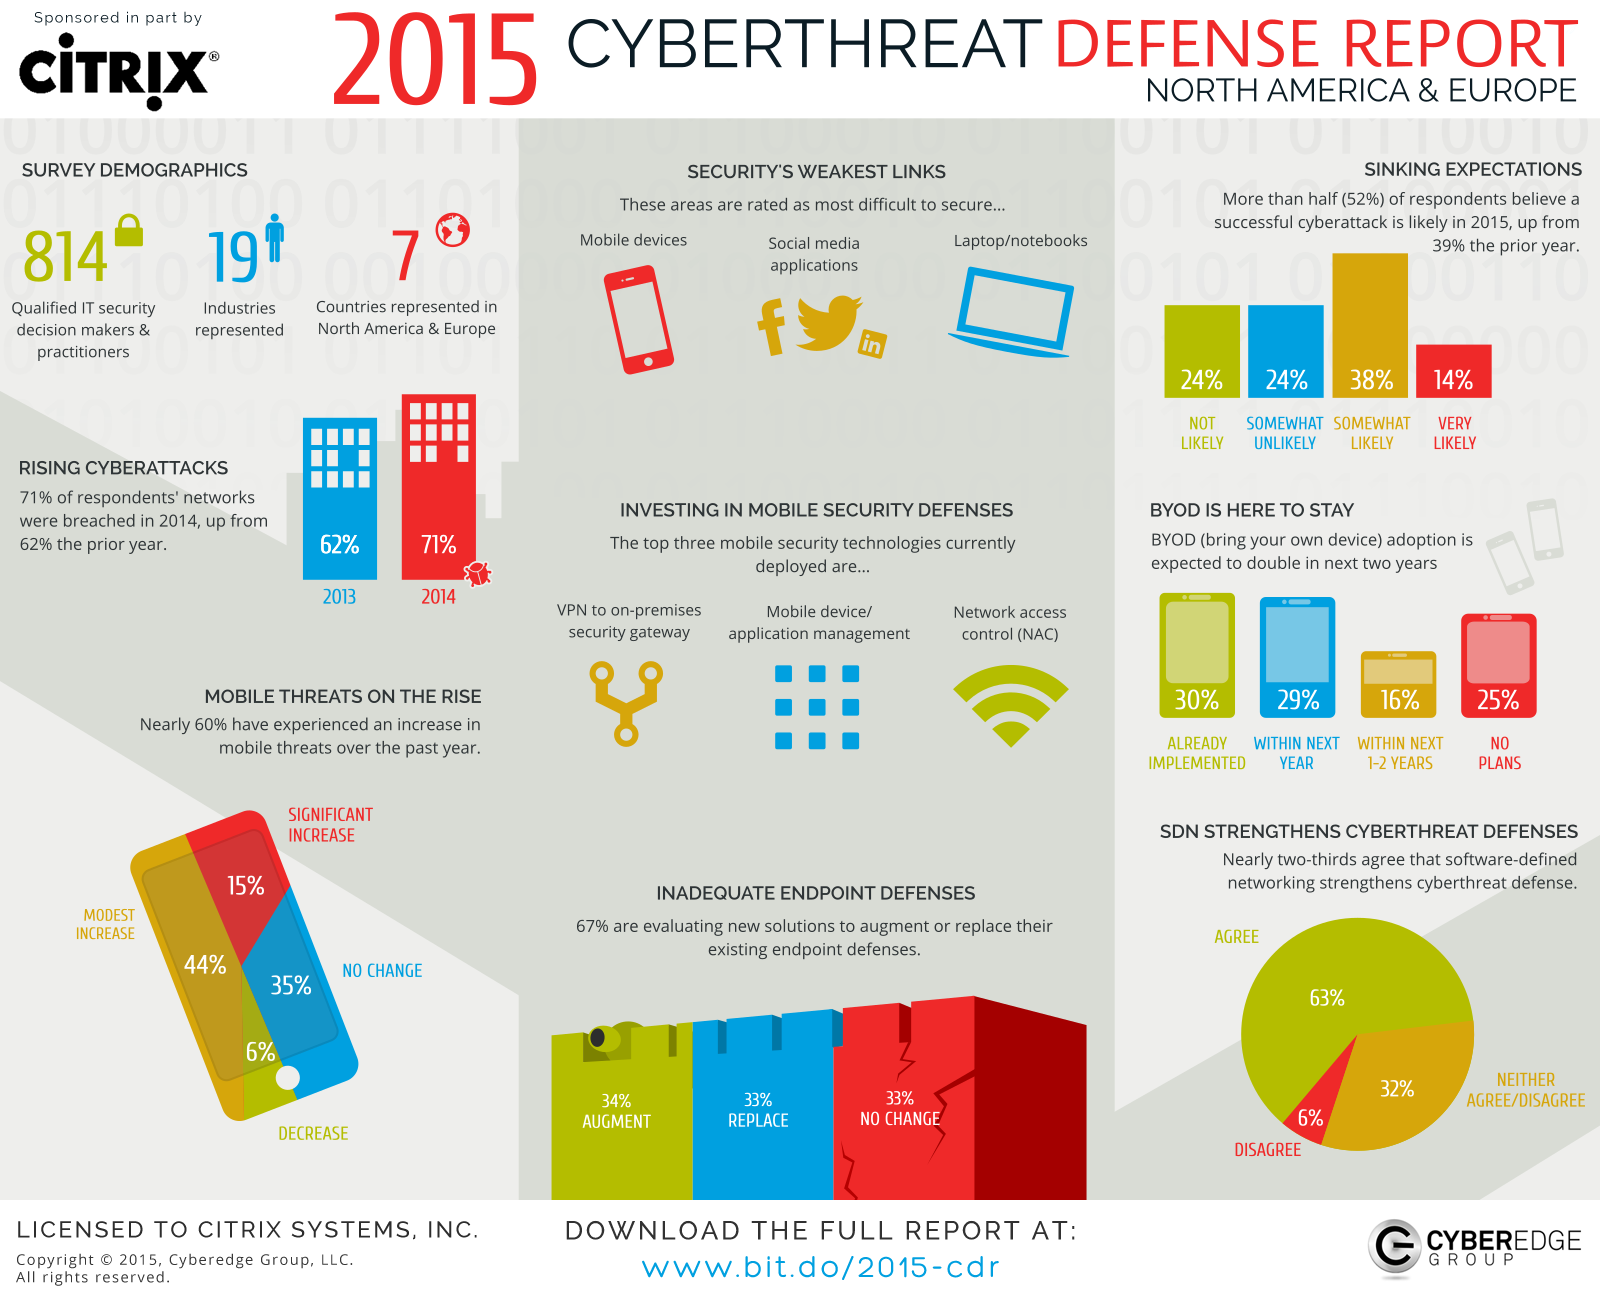 Presentation image for Citrix 2015 Cyberthreat Defense Report Infographic